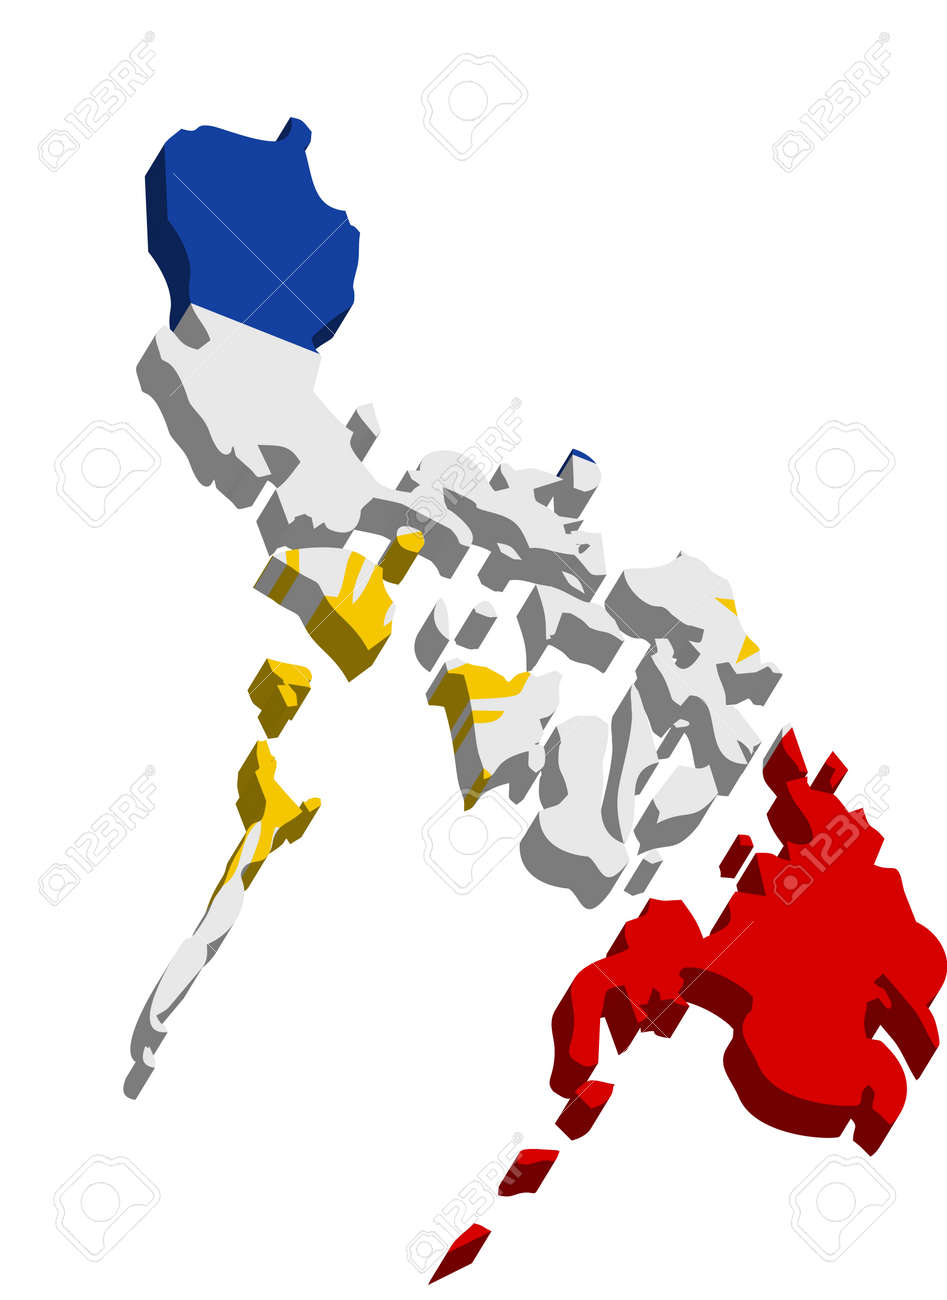 Map Of The Philippines 3D A Map Of Philippines 3D On White Background Royalty Free Cliparts